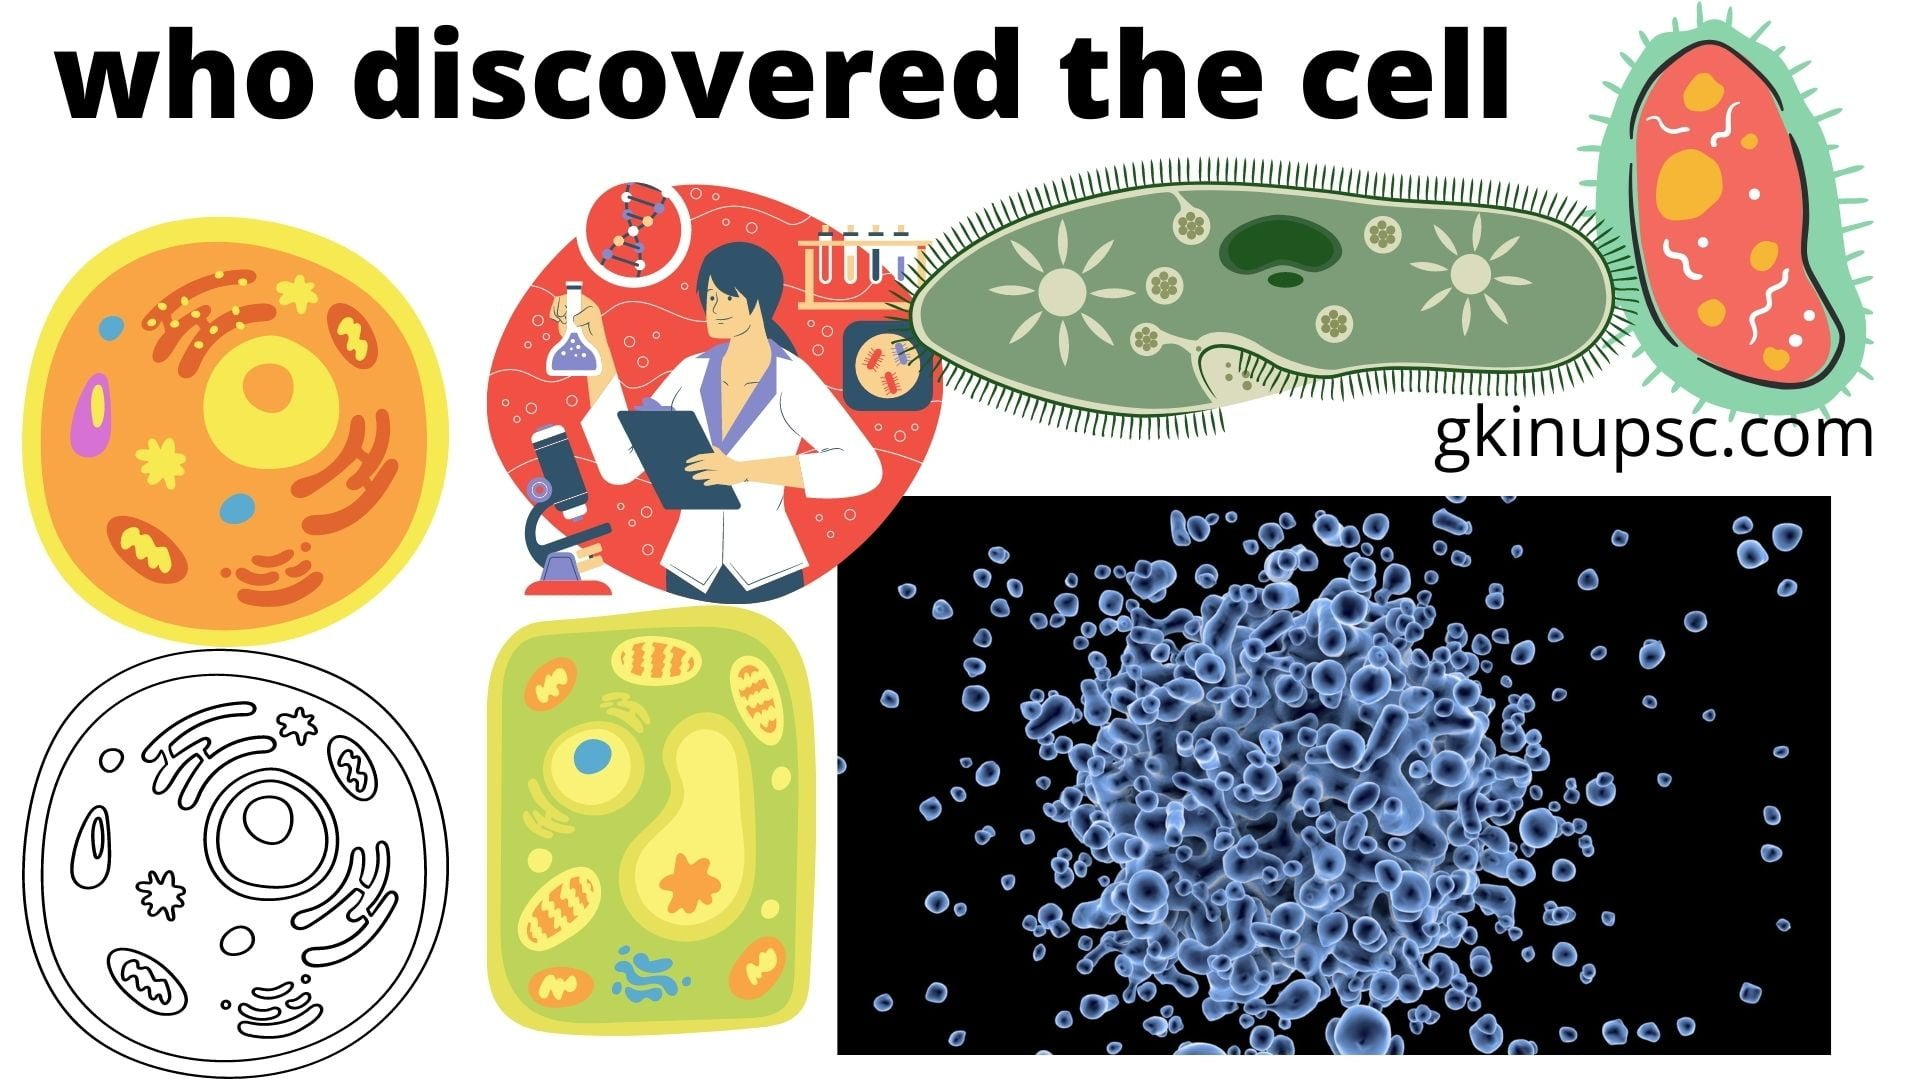 who discovered the cell